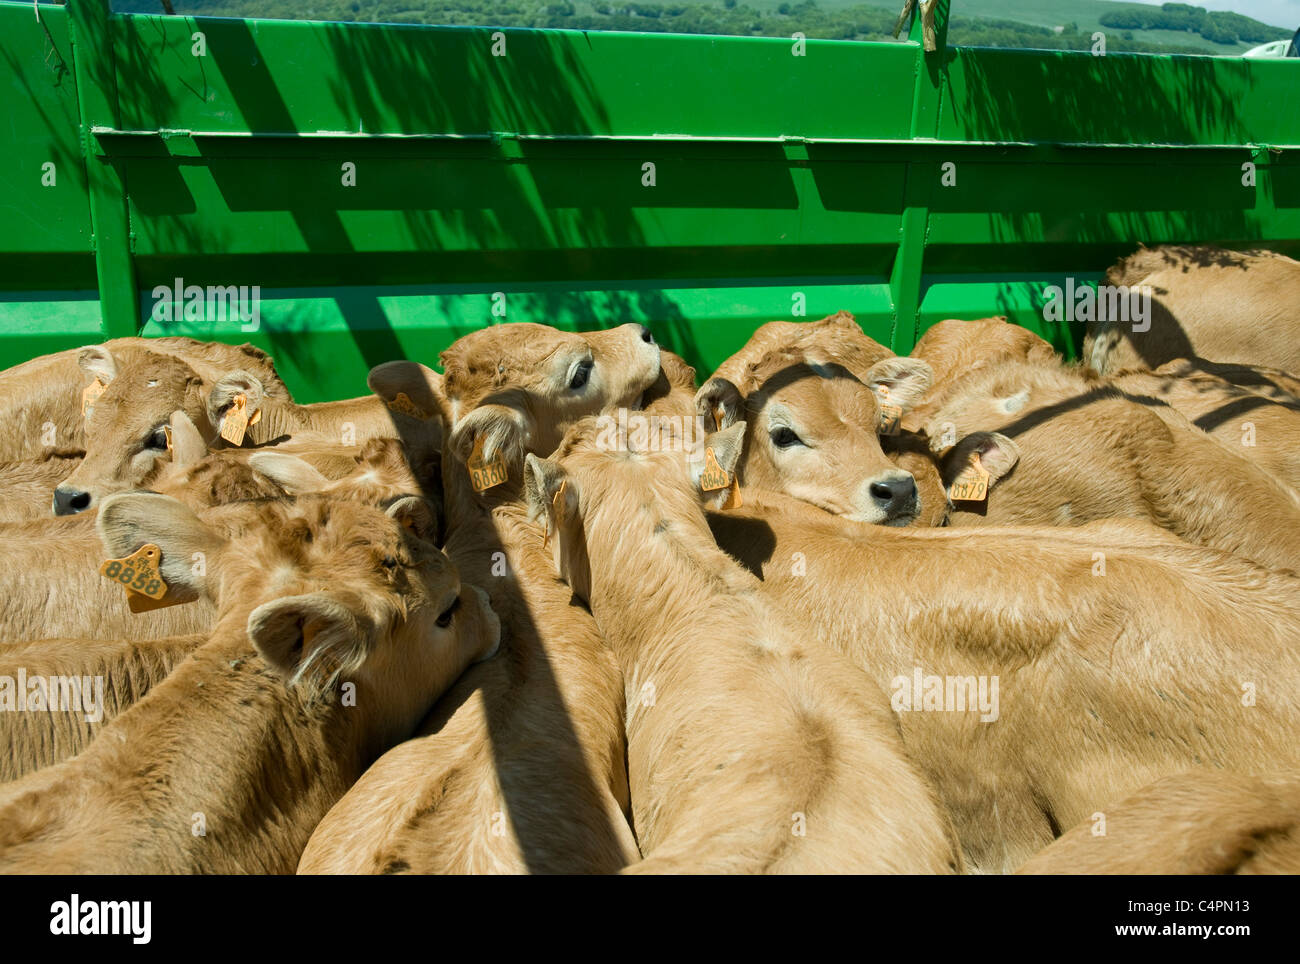 Calves closely packed in a truck while their mothers moo loudly in a nearby field during Lozère's annual - Stock Image